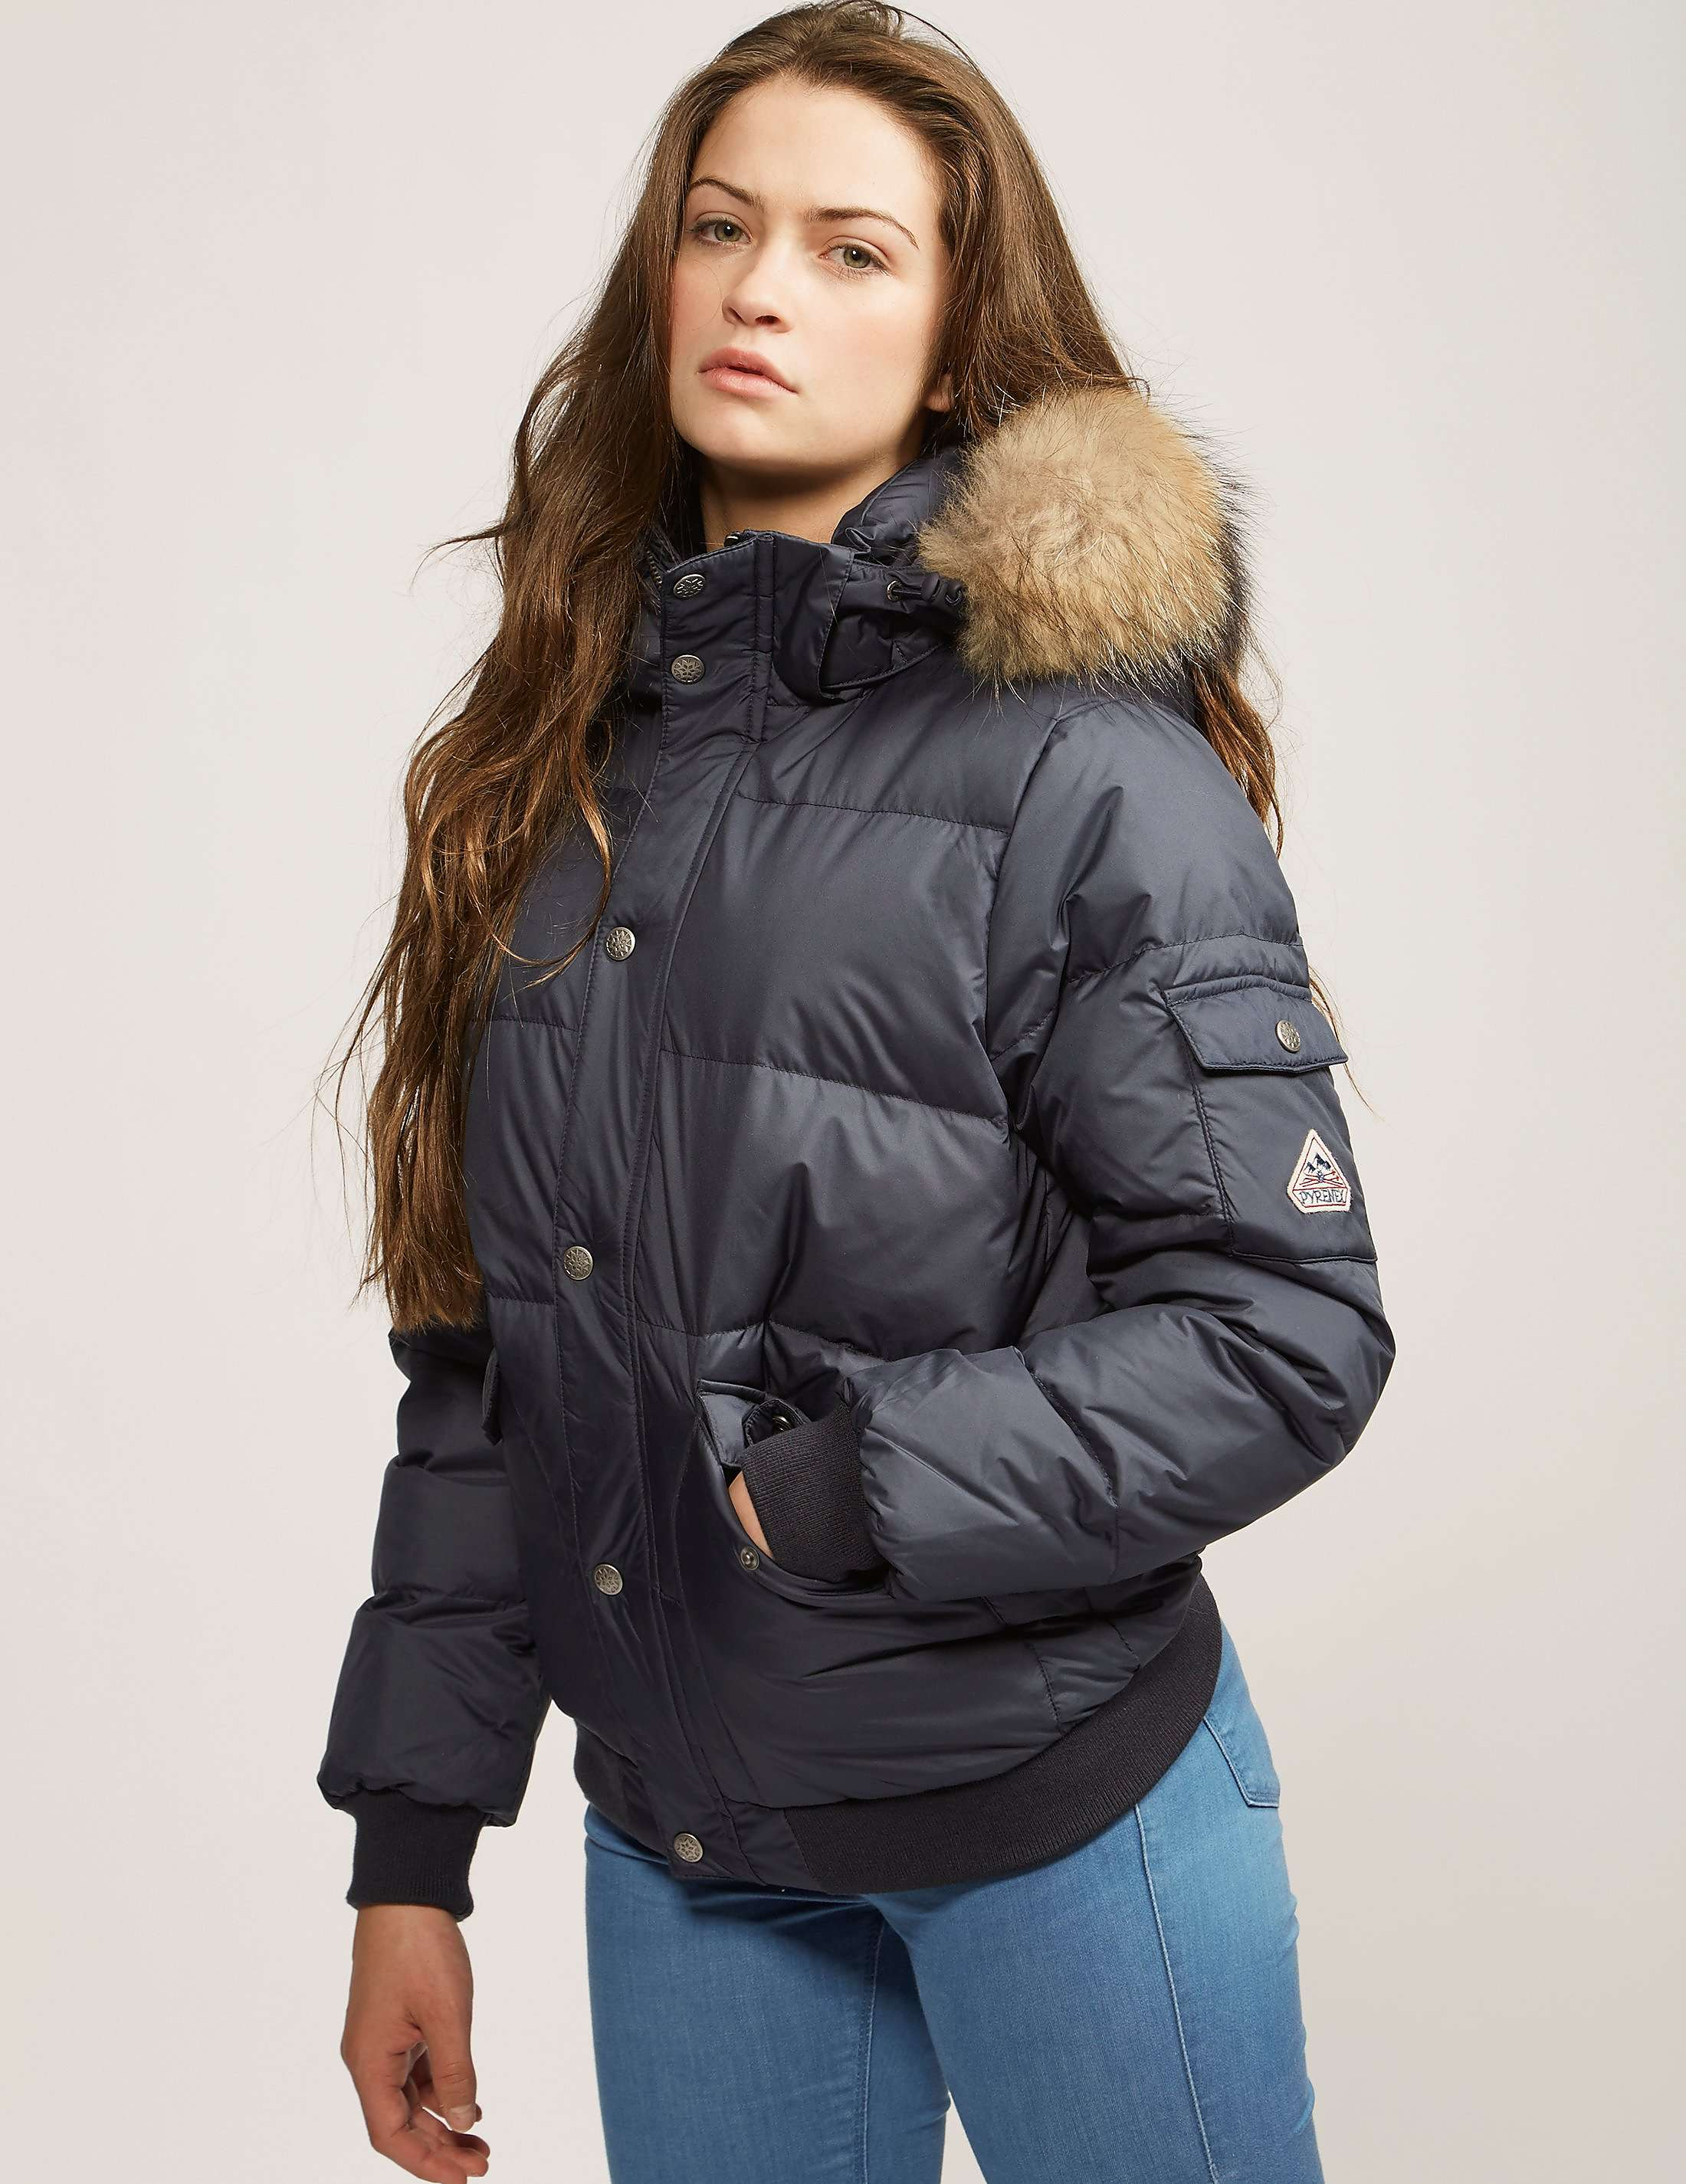 Kids Outerwear  Debenhams